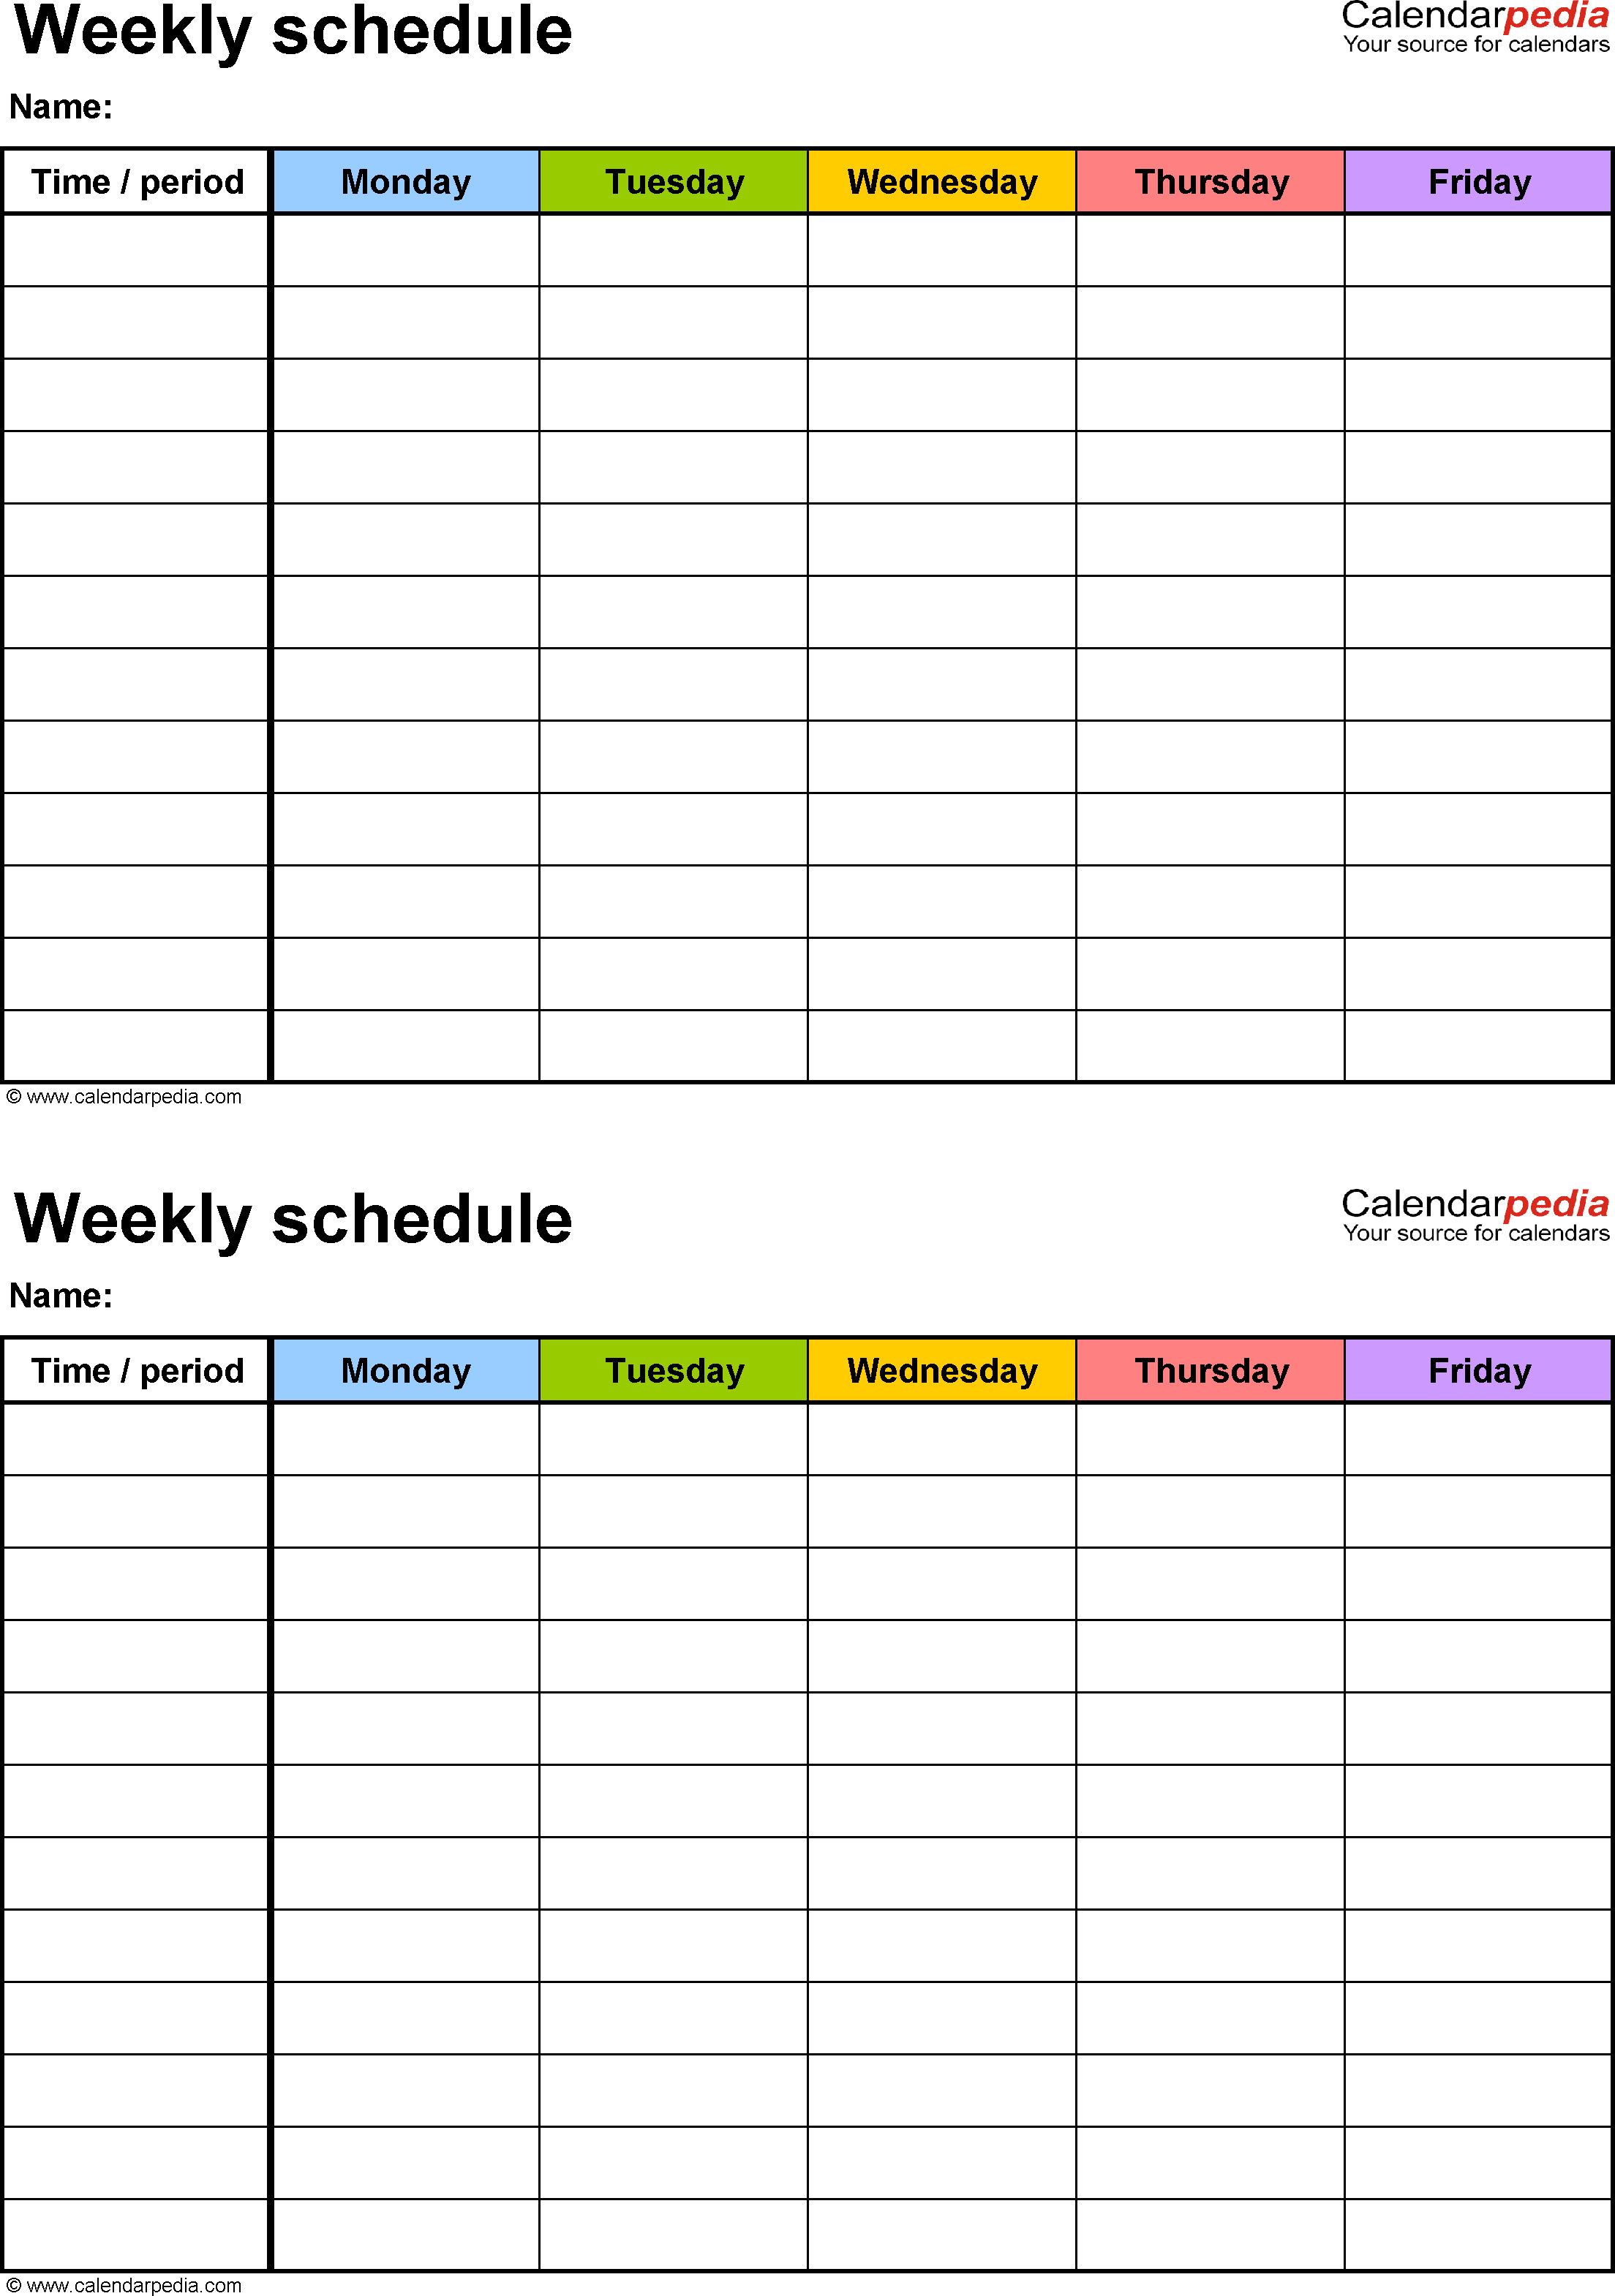 Carb Cycling Excel Spreadsheet Pertaining To Carb Cycling Excel Spreadsheet Weekly Planner Template Collections